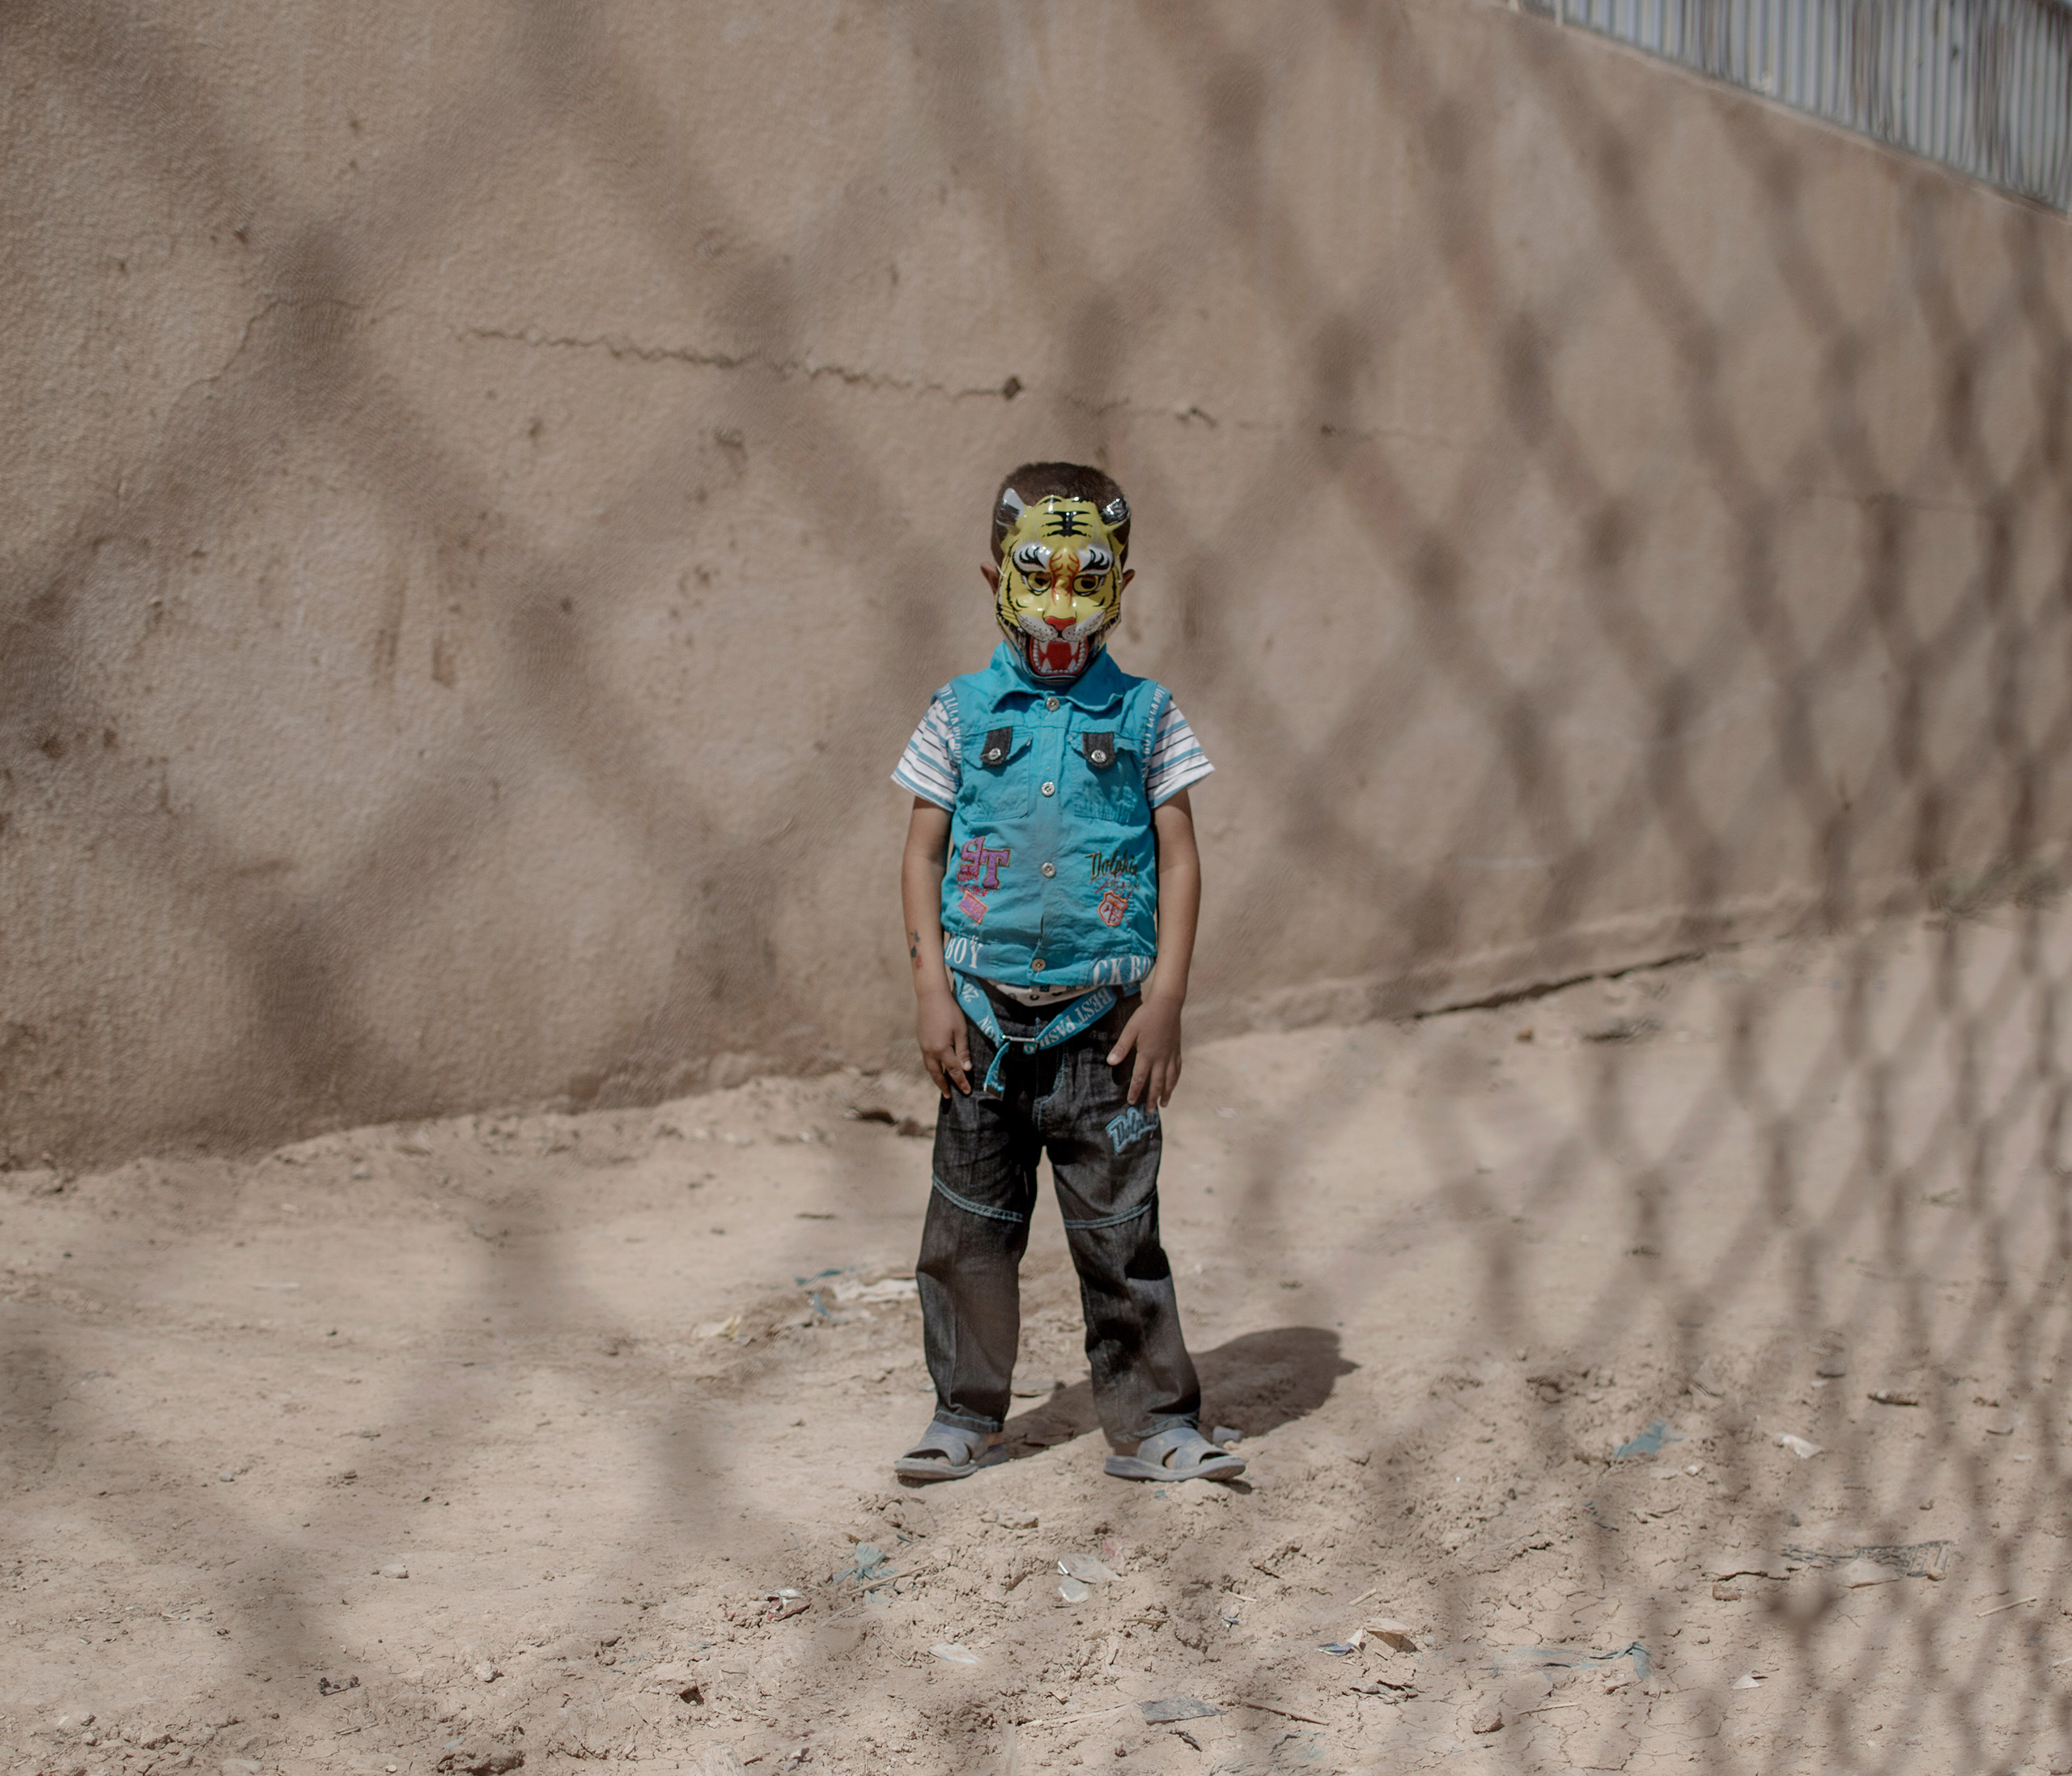 A young boy poses for a portrait at the Debaga refugee camp, an old football stadium that's been turned into a temporary home for thousands of refugees fleeing the war between ISIS and coalition troops in northern Iraq, Oct. 2016.